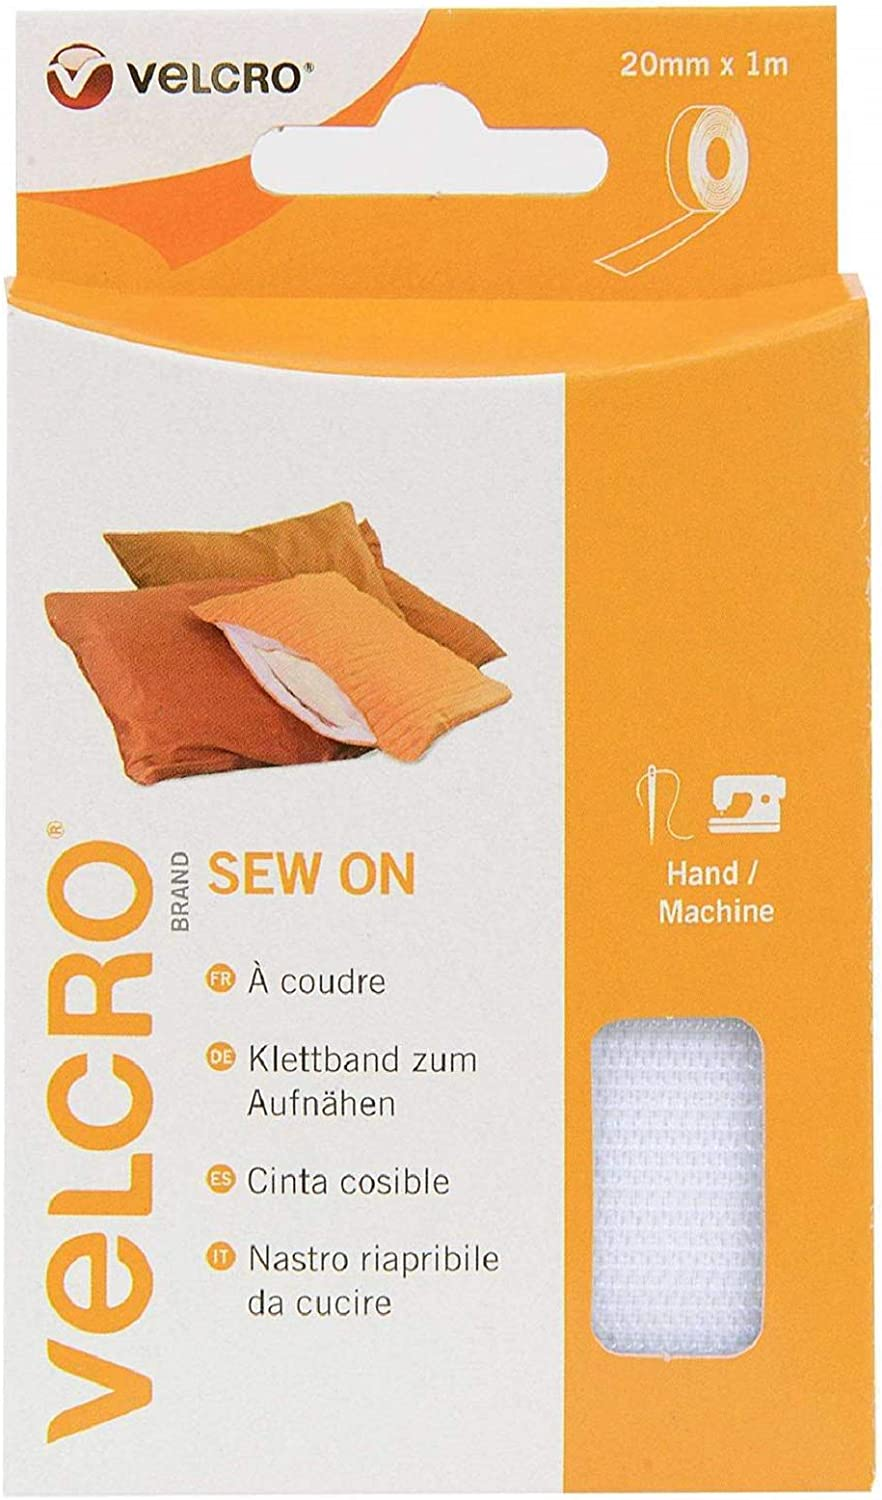 VELCRO® Brand Snag Free Sew On Tape White 20mm x 3m